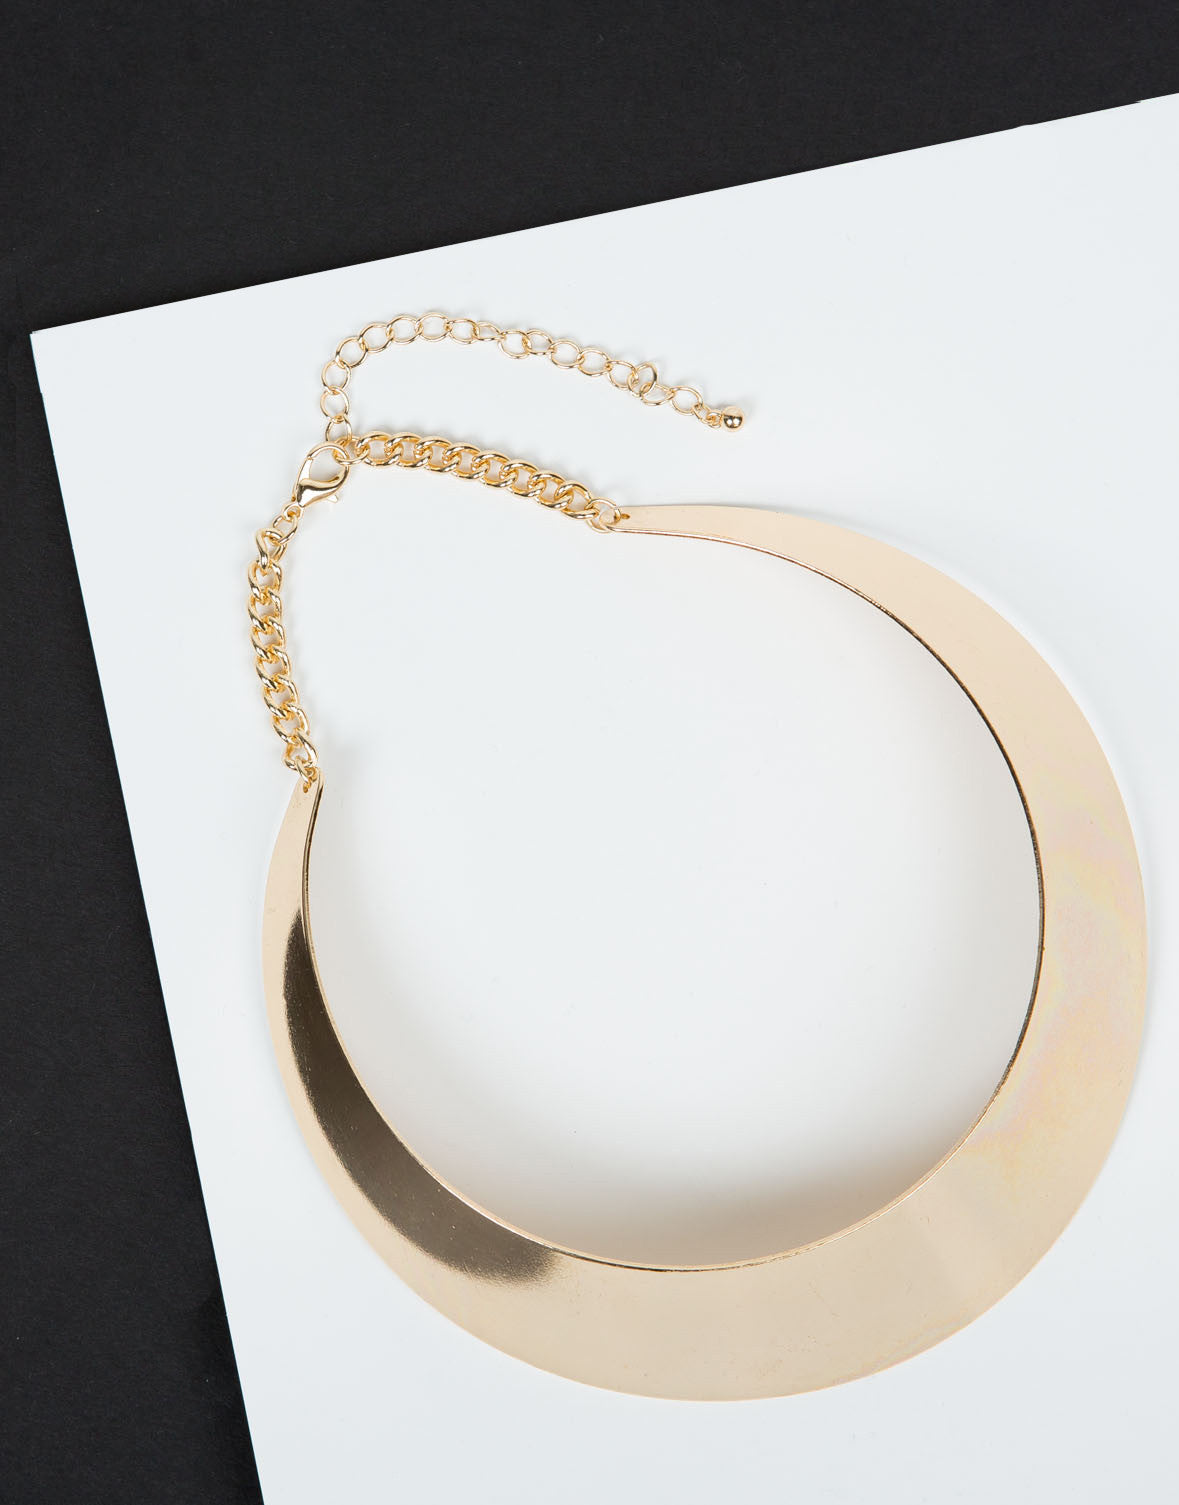 Front View of Bold and Gold Collar Necklace